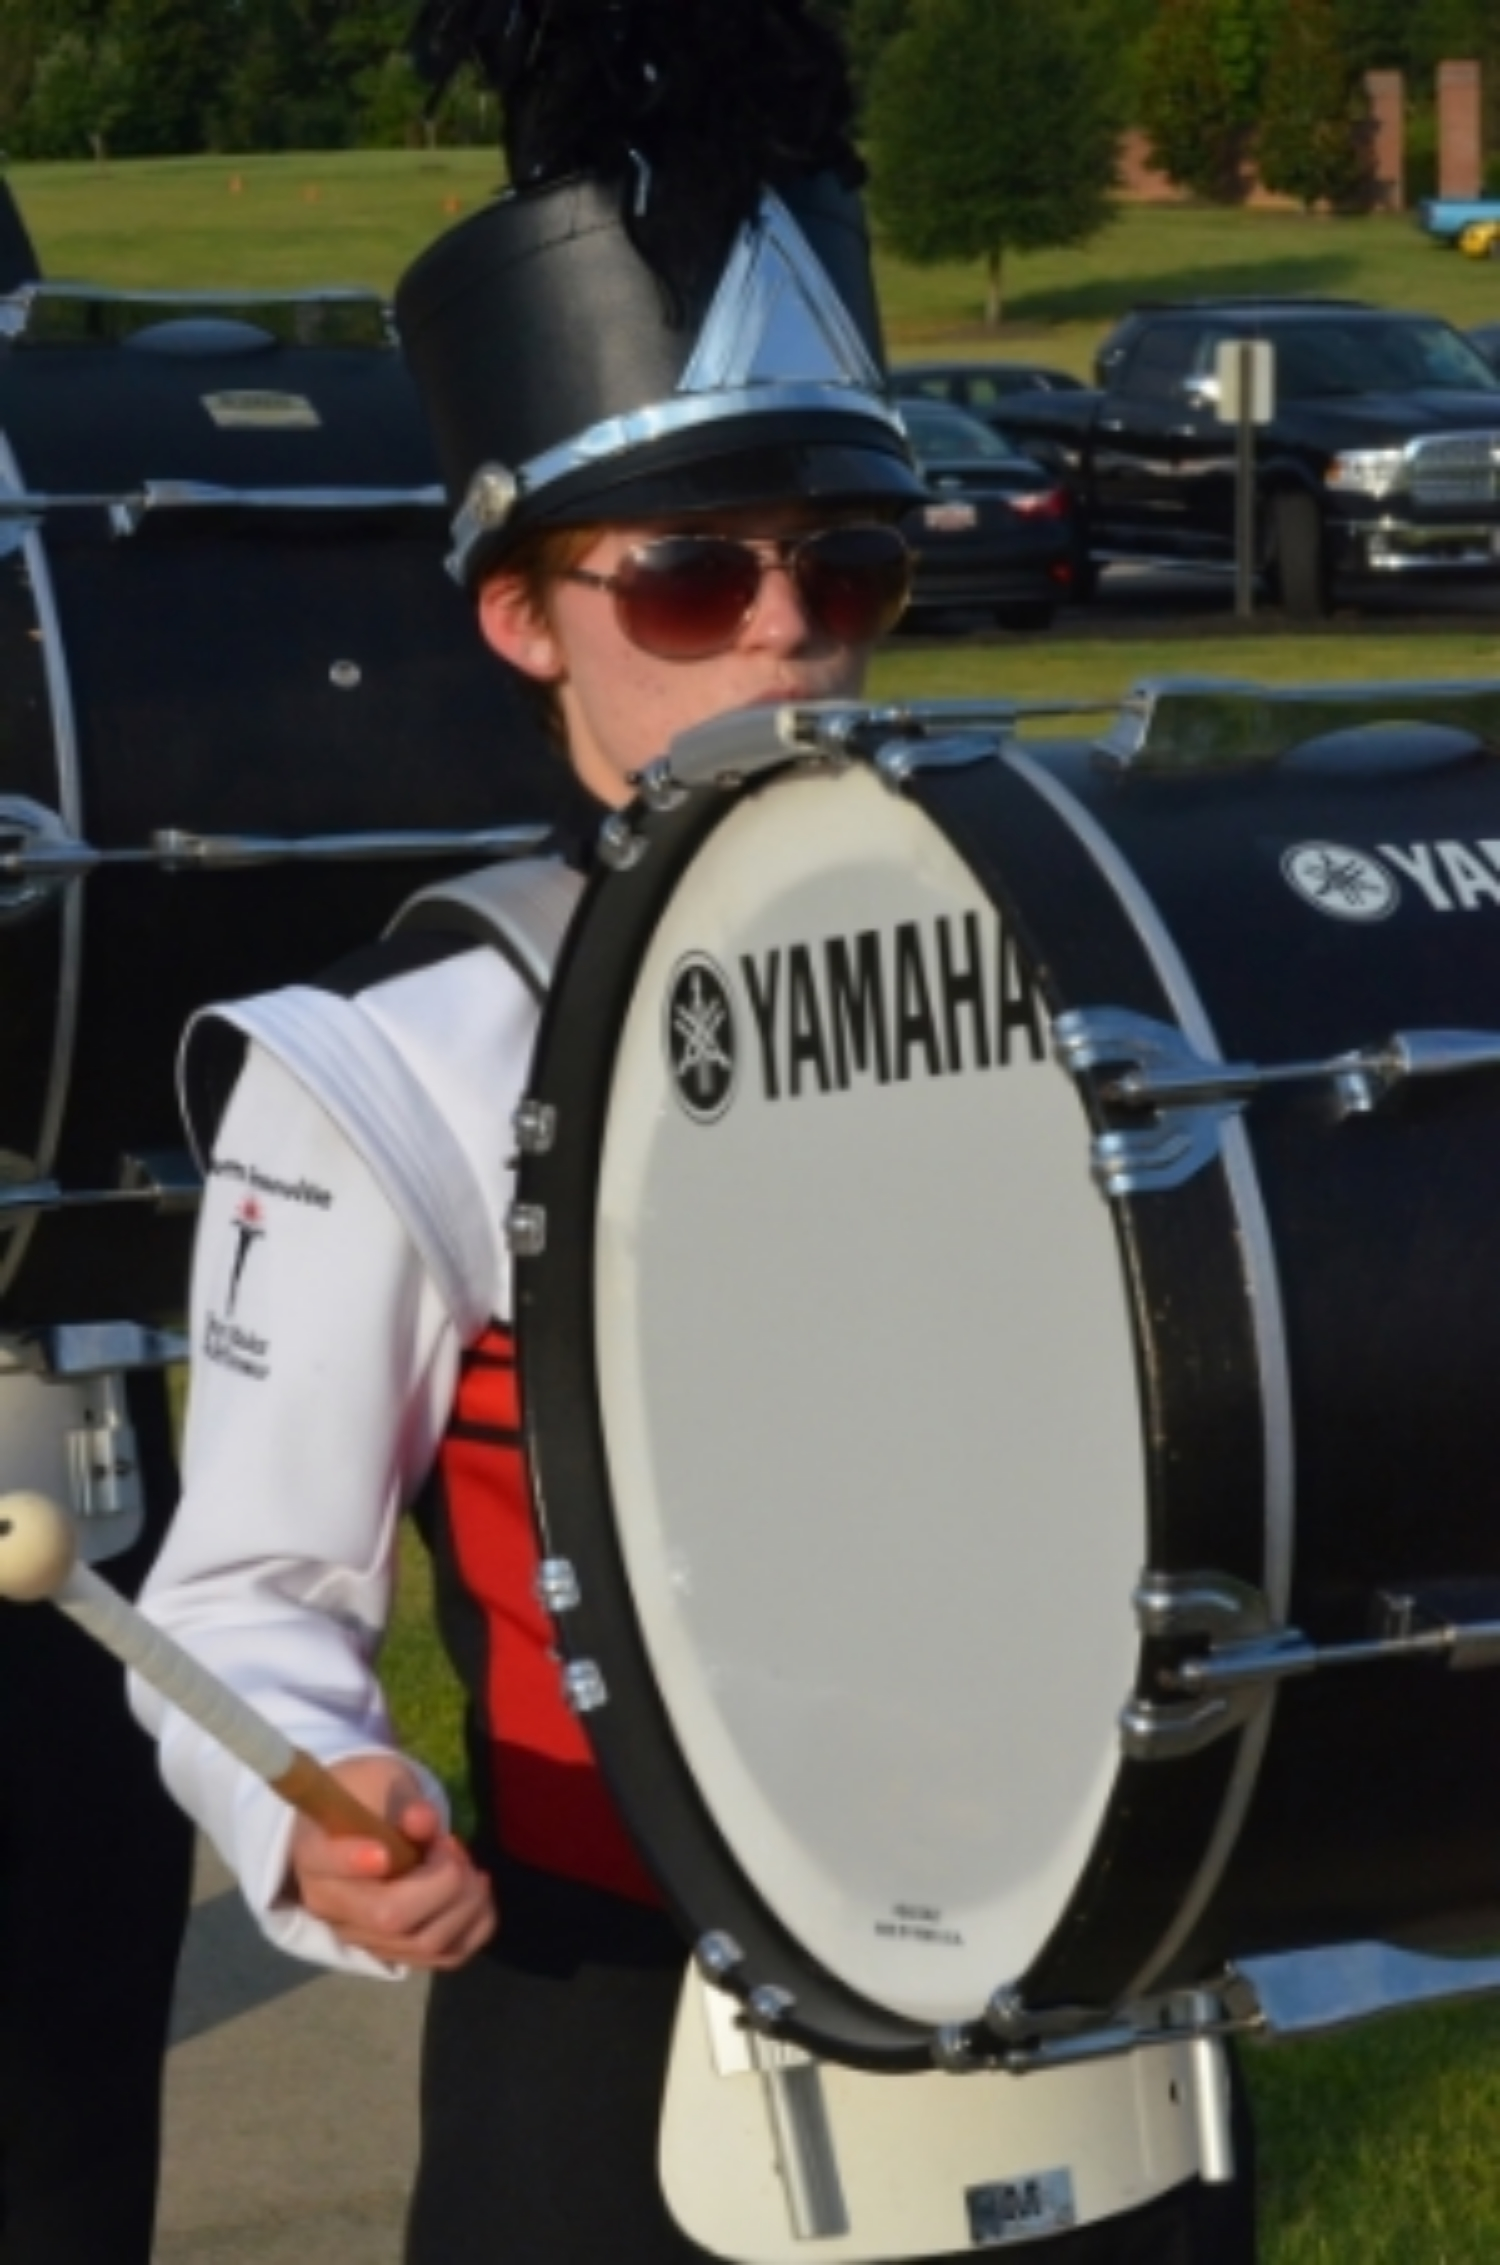 Band member plays before heading into the stadium